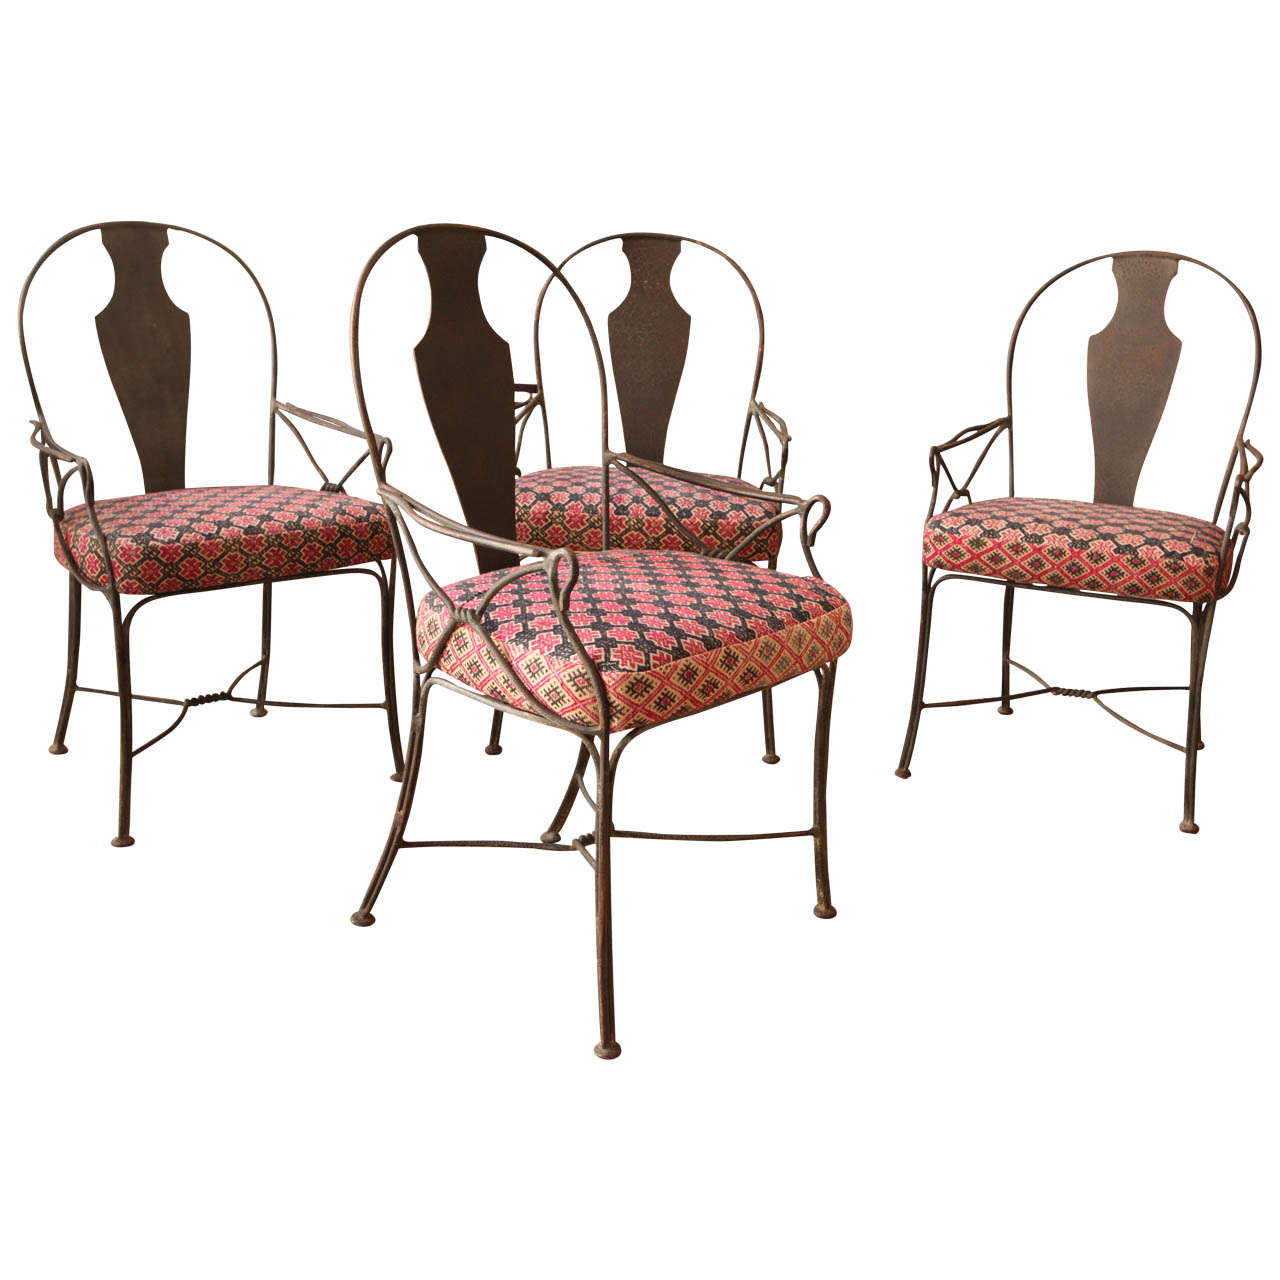 Seating Mini Gravita Armchair In Oriental Garden Fabric: Metal Patio Chairs With Upholstered Seats At 1stdibs